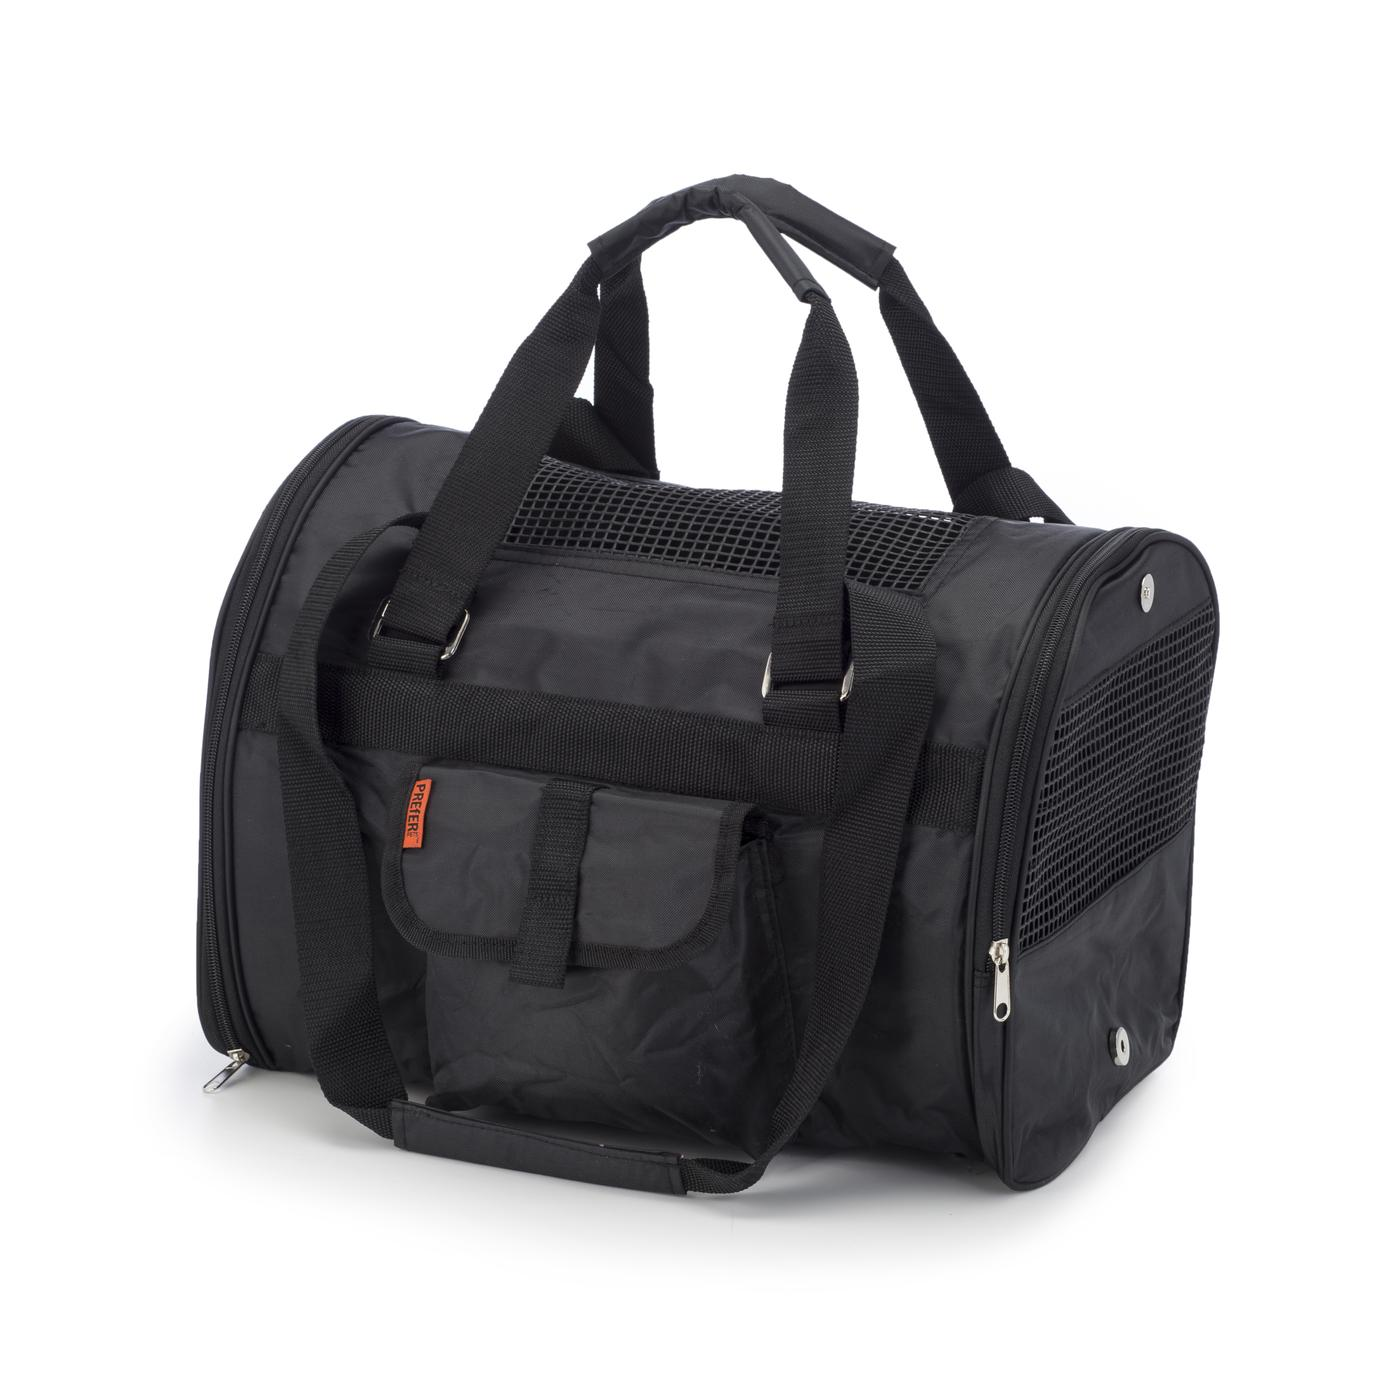 328 Backpack Carrier, Black